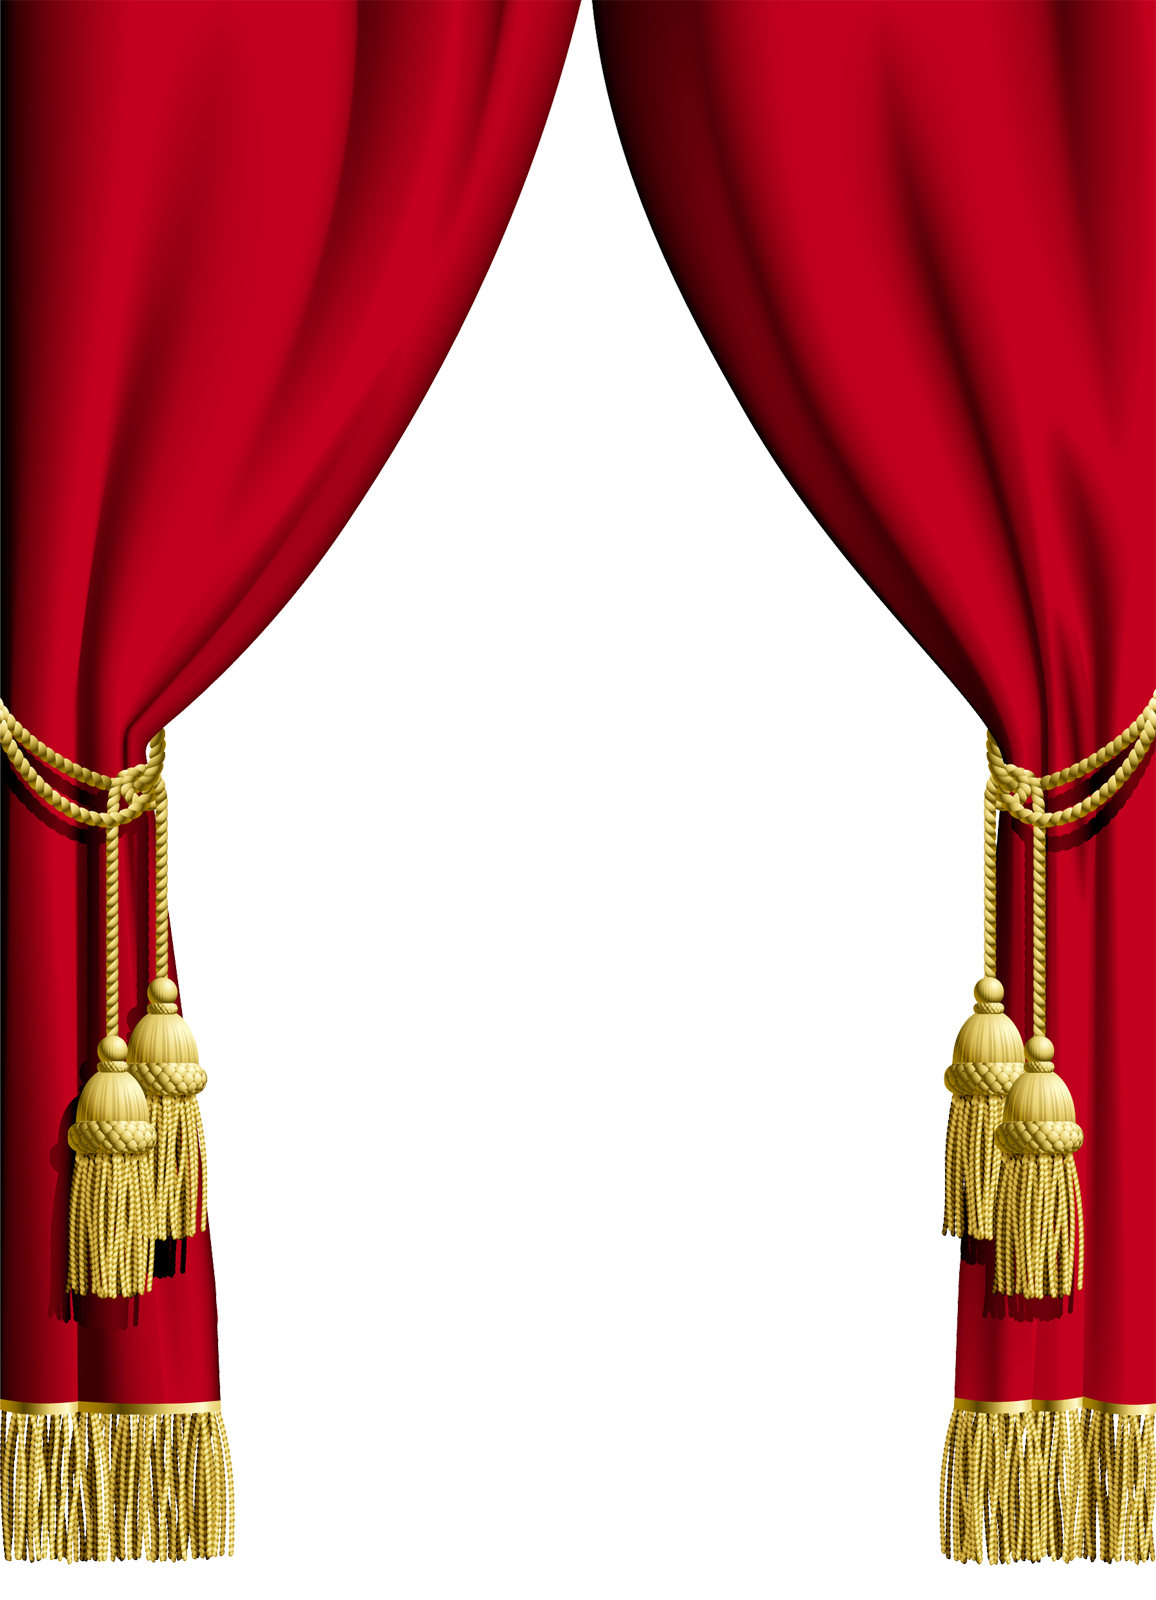 Stage clipart stage curtain. Curtains png images free